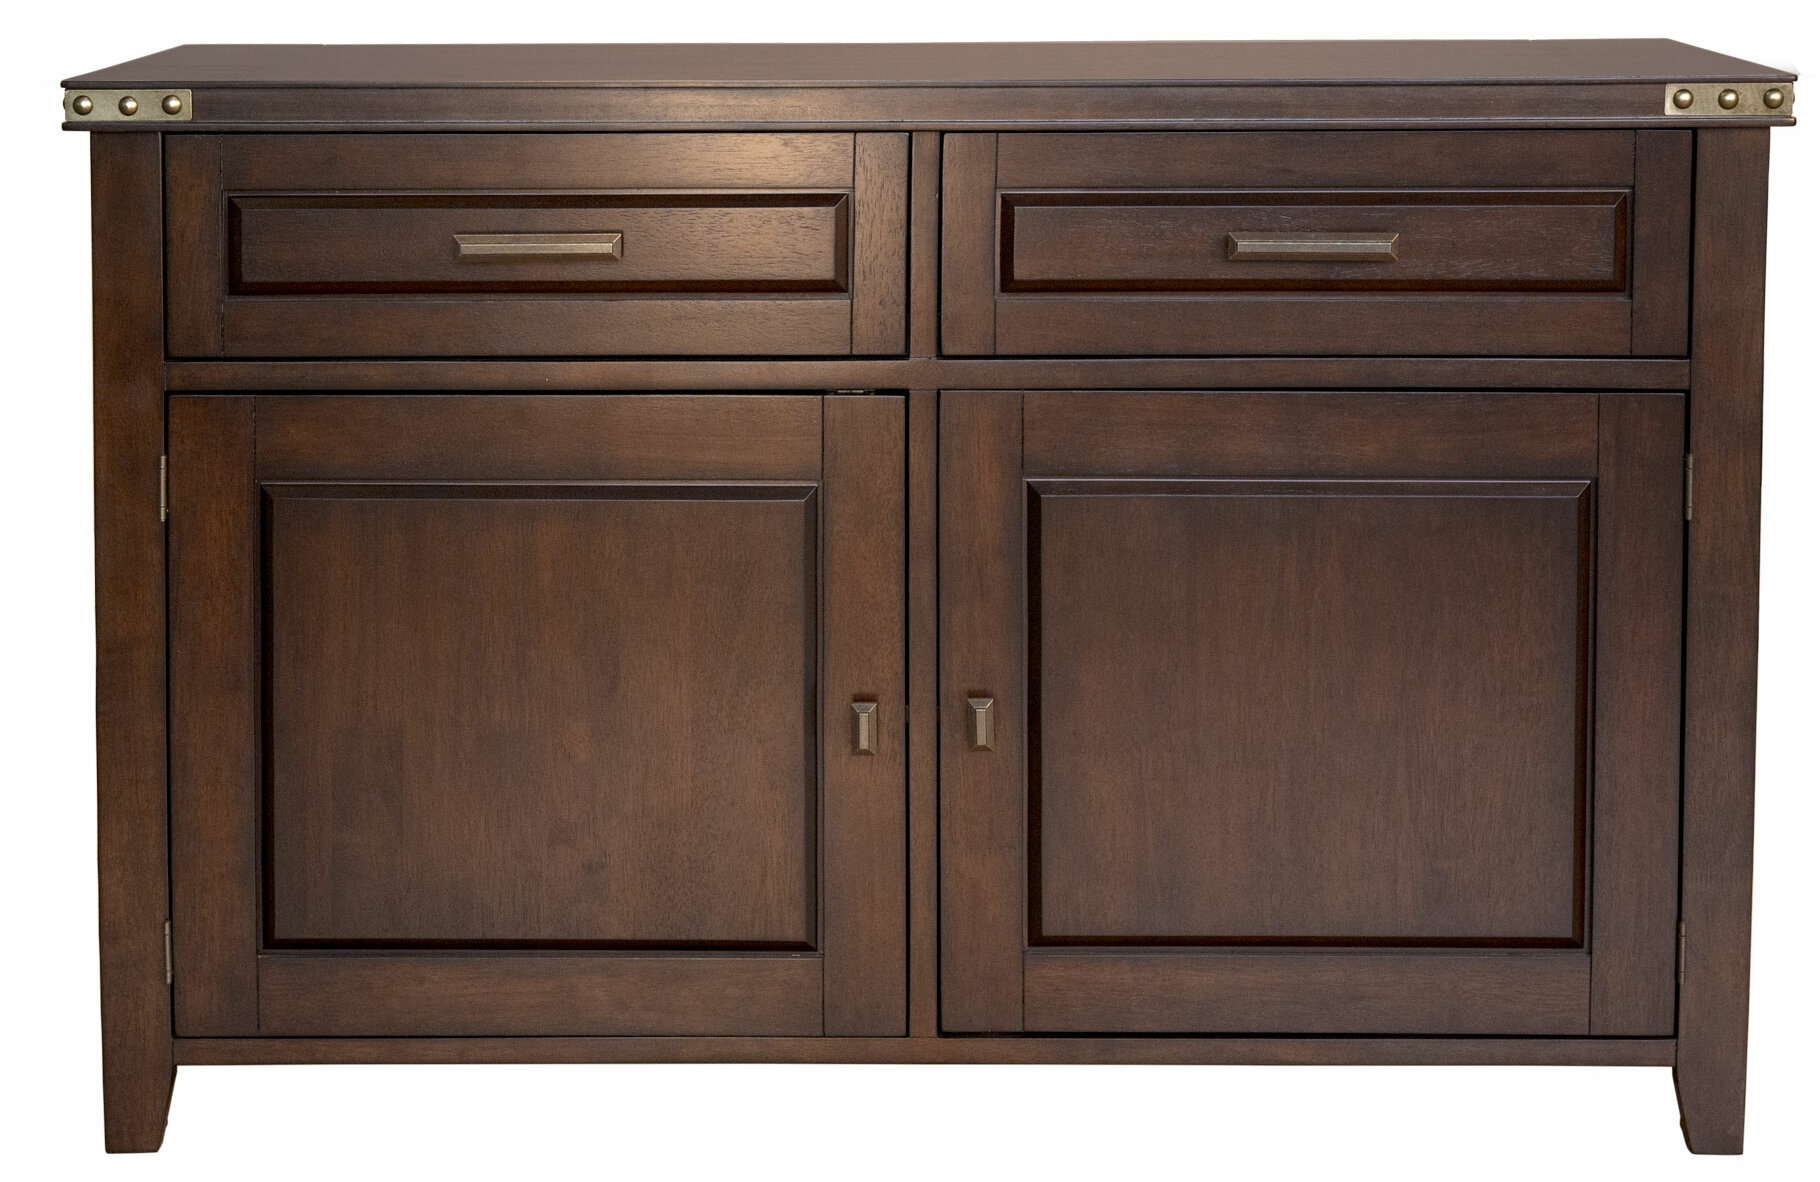 Aguayo Sideboard pertaining to Solid and Composite Wood Buffets in Cappuccino Finish (Image 1 of 30)